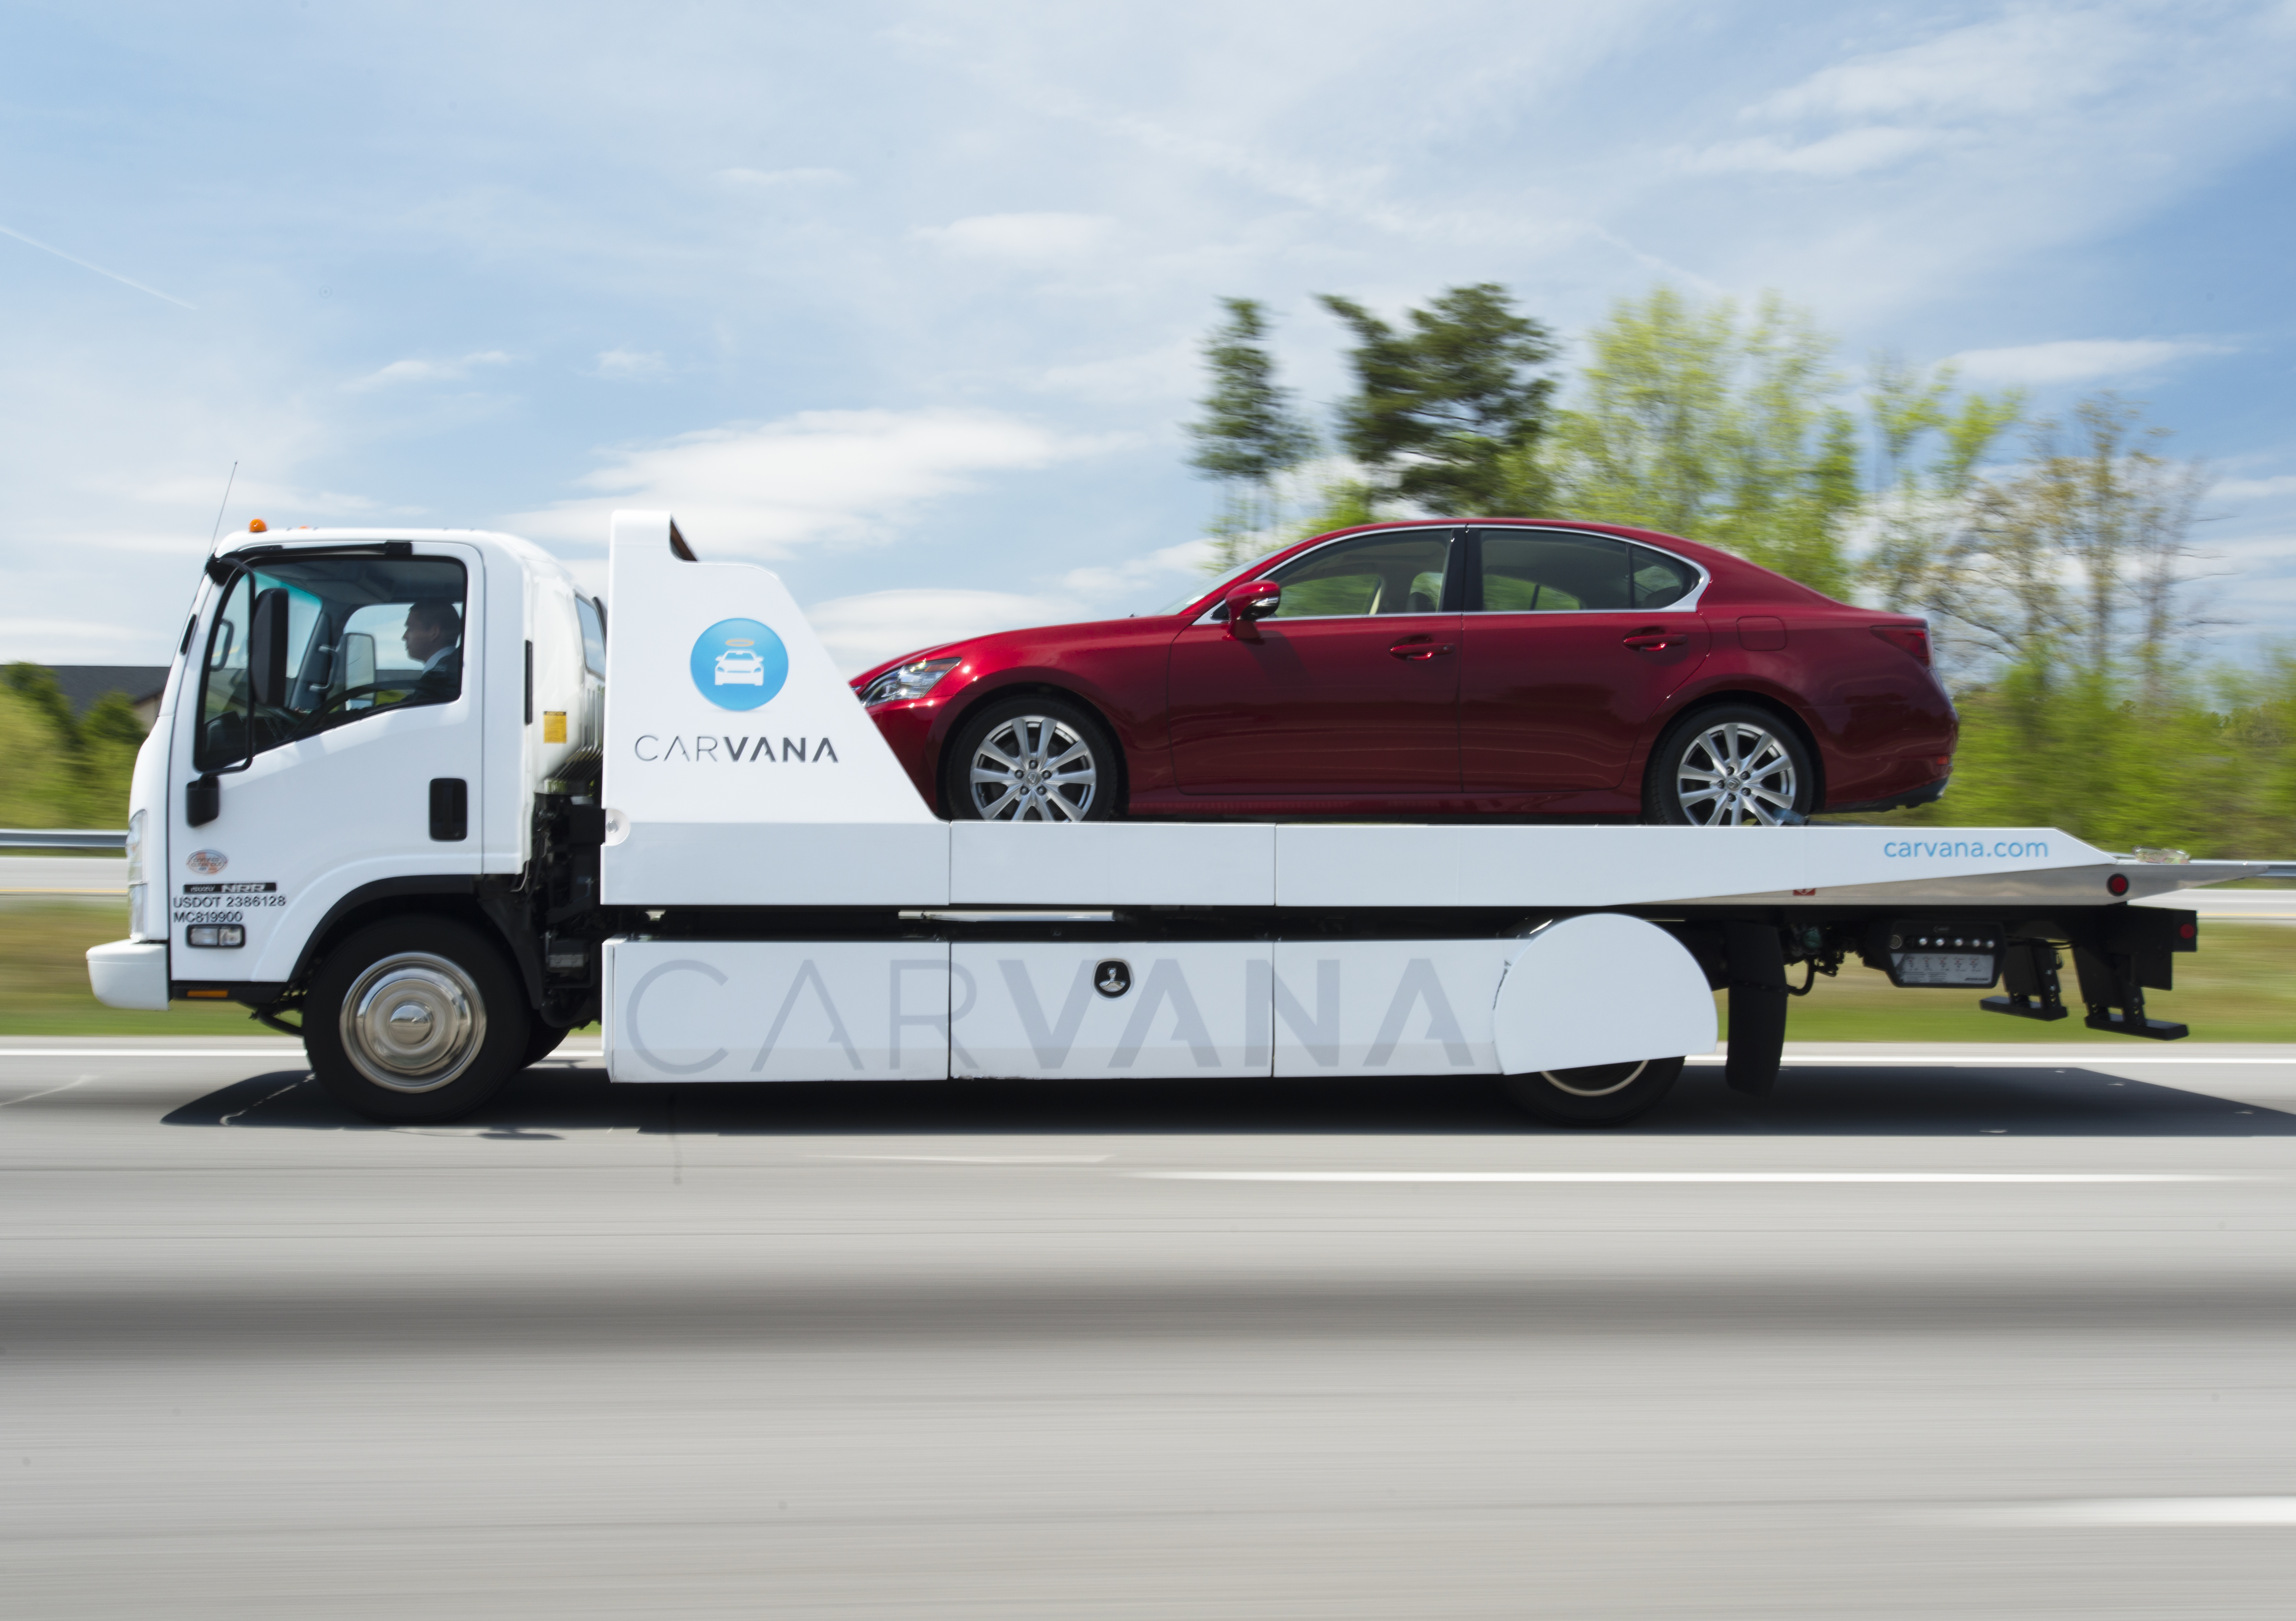 Carvana Co (CVNA) Posts Earnings Results, Beats Expectations By $0.04 EPS